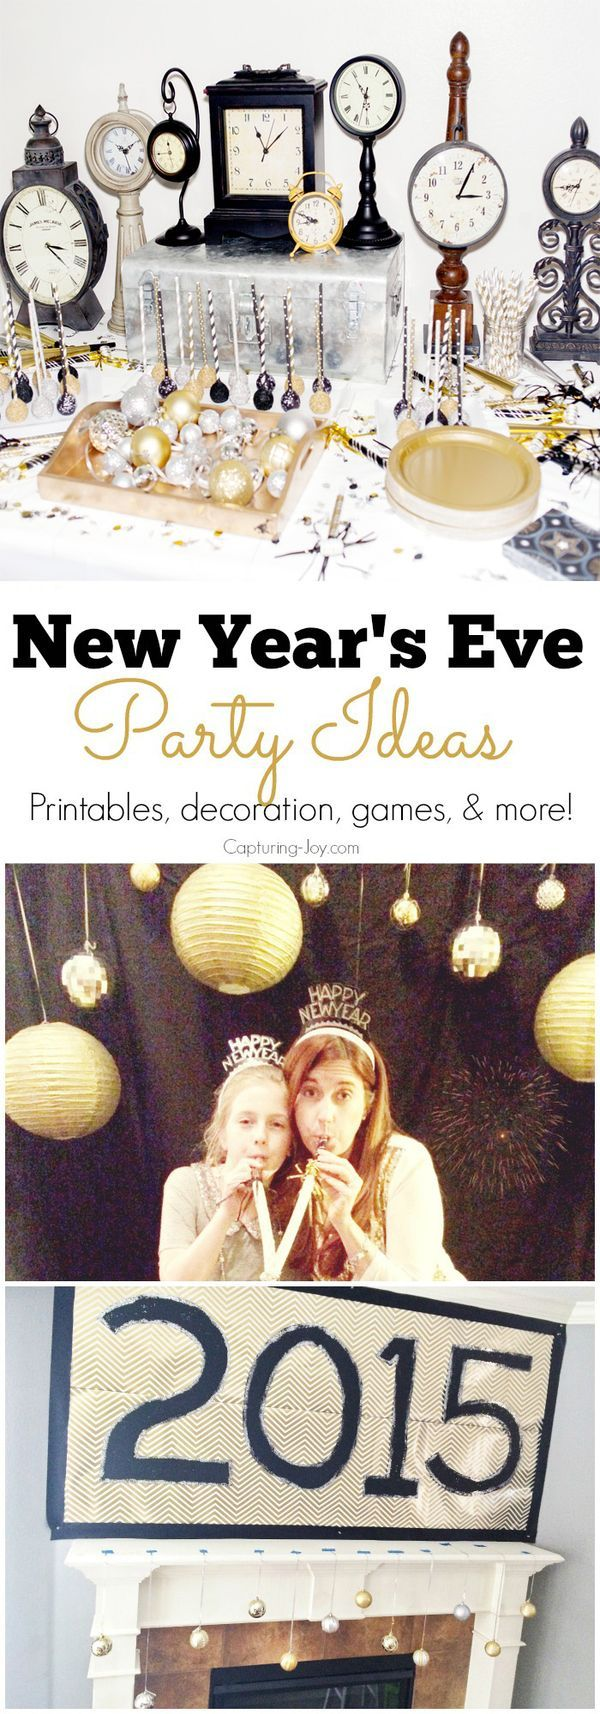 39 best images about Party Themes on Pinterest